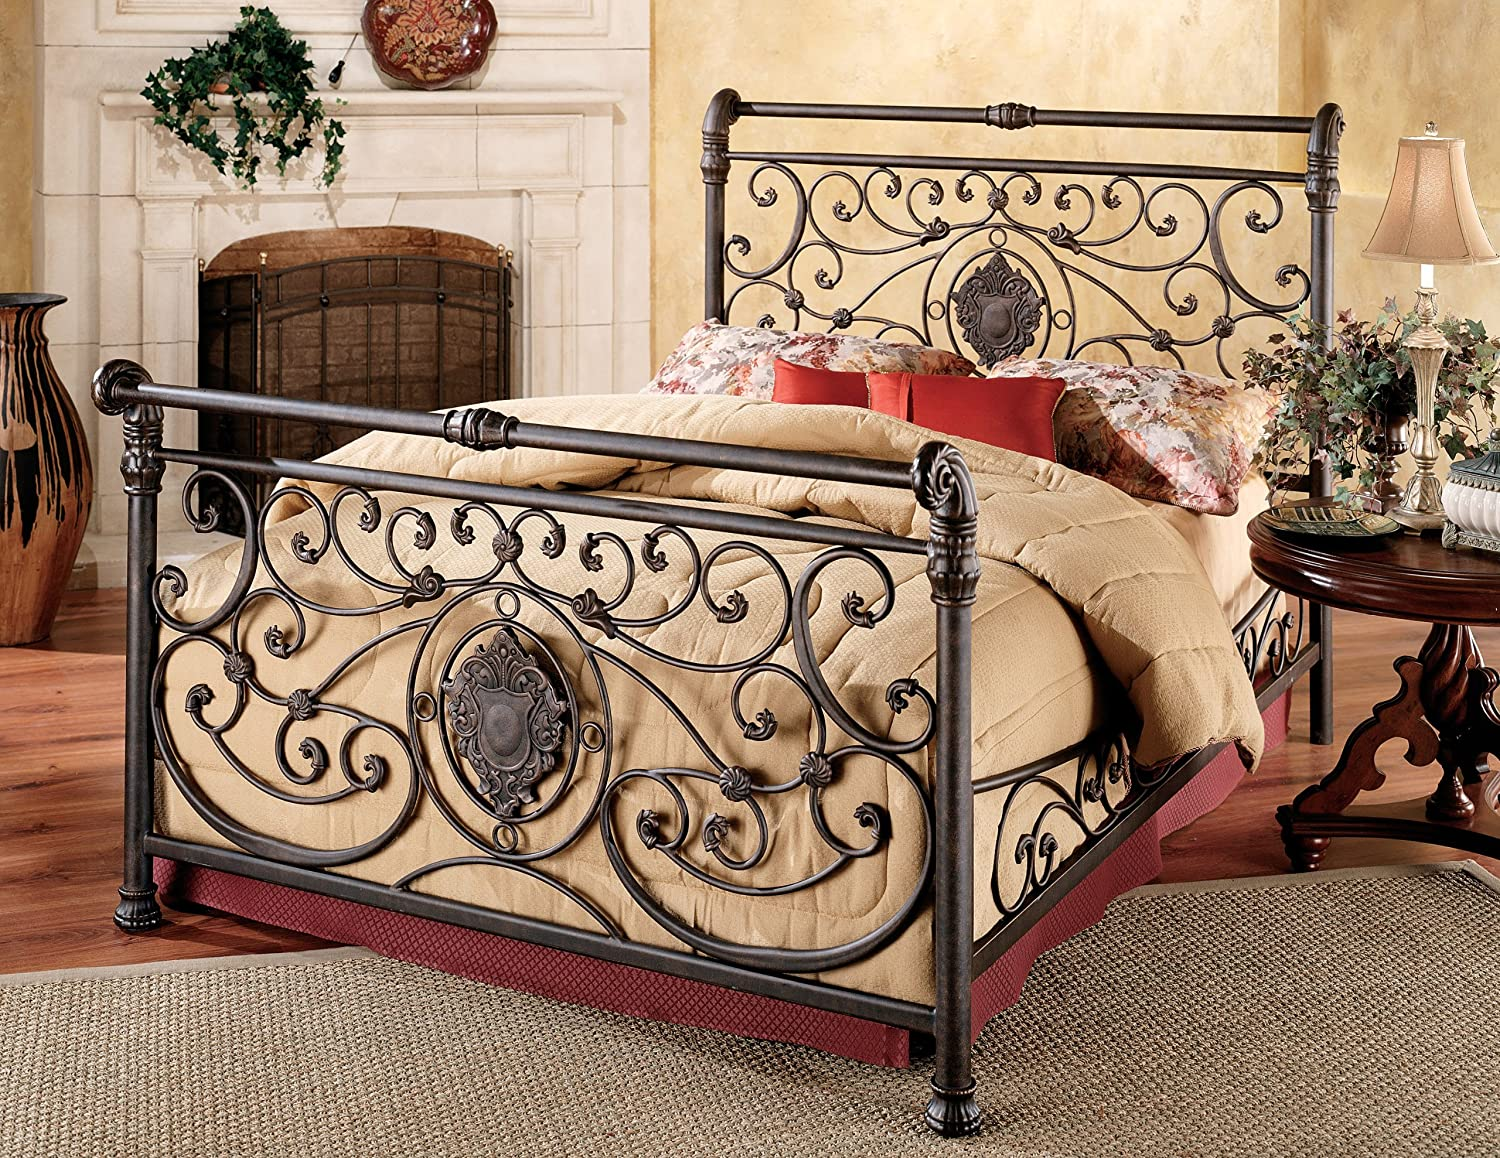 Attractive Amazon.com: Hillsdale Furniture 1039BQR Mercer Bed Set With Rails, Queen,  Antique Brown: Kitchen U0026 Dining